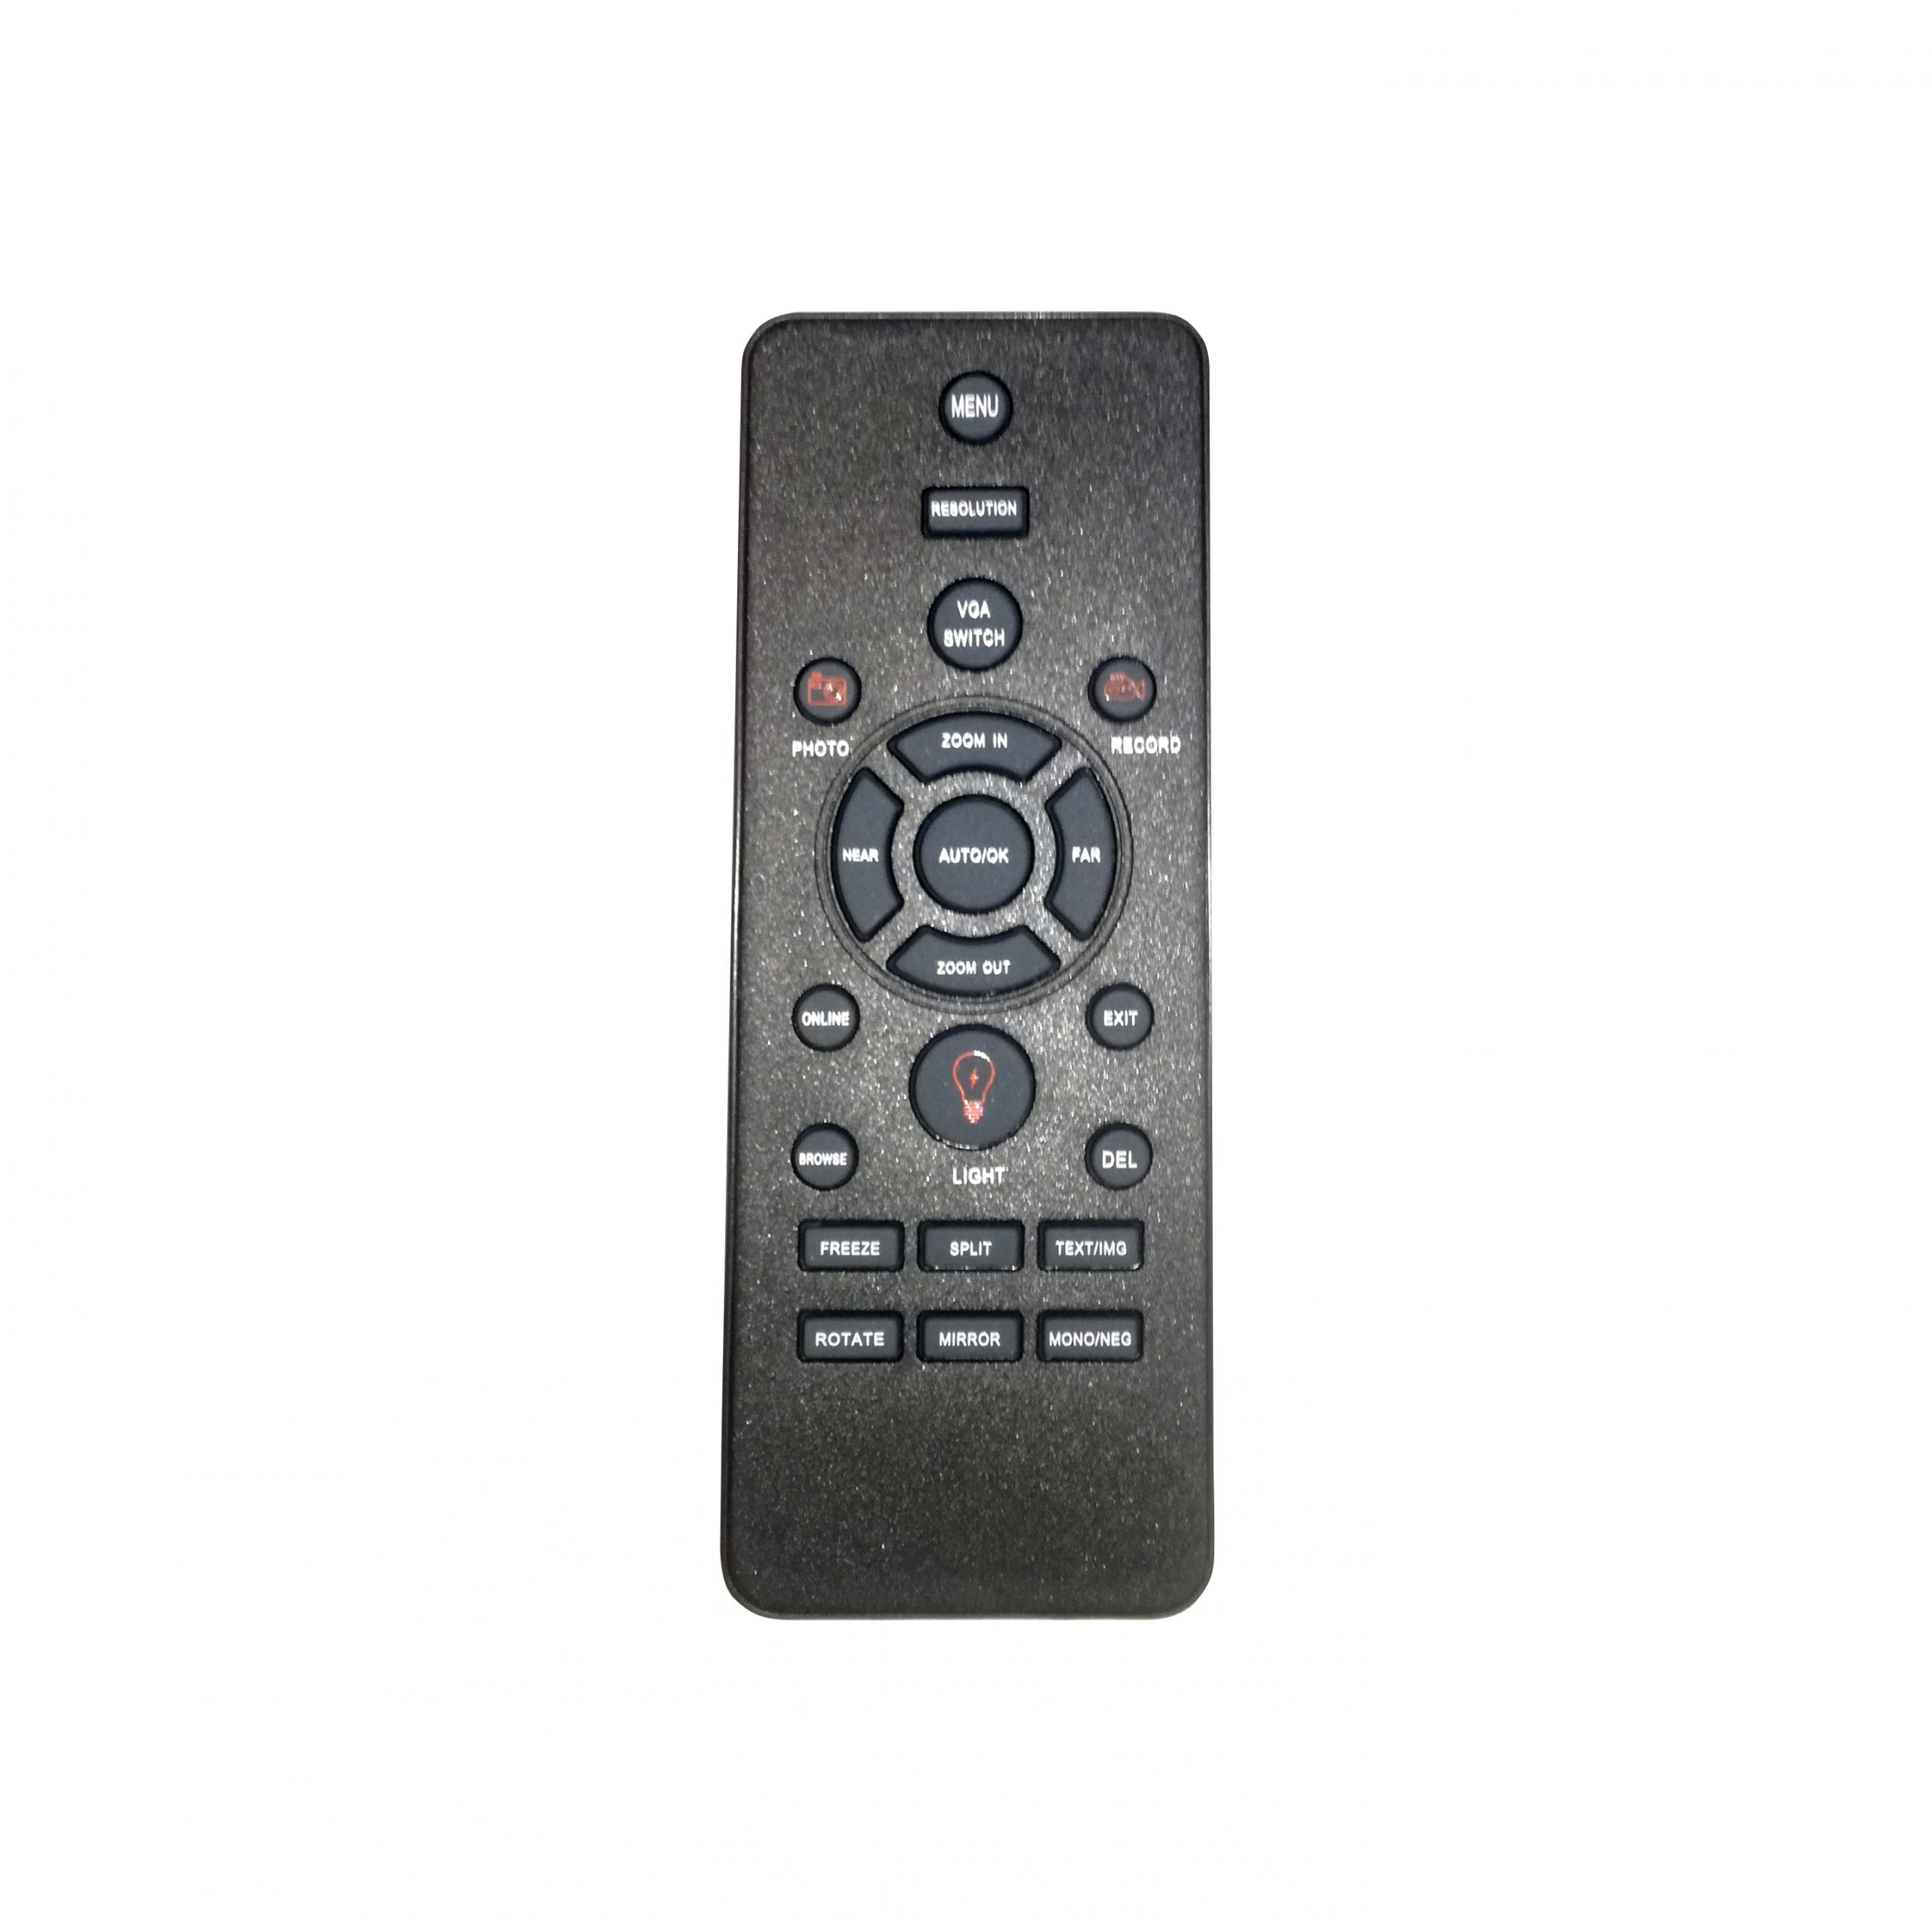 Parrot Spare Remote for the VZ0002 Visualizer